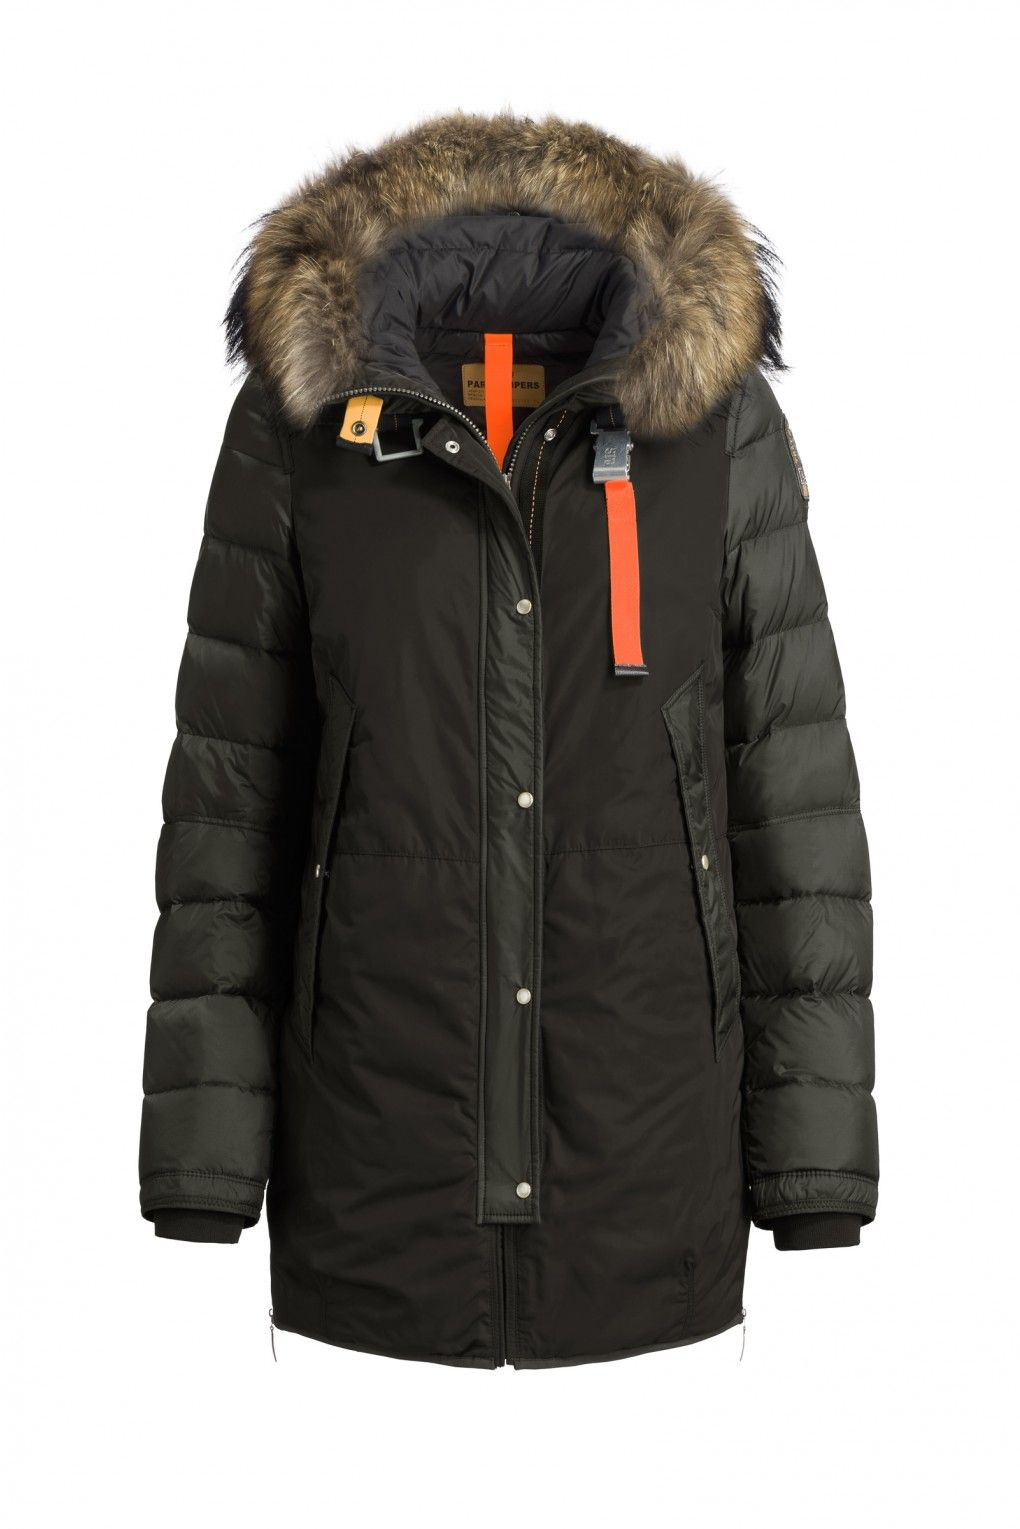 GRANT | Parajumpers · PolyvoreLoftsNice ThingsMountainLoft ...